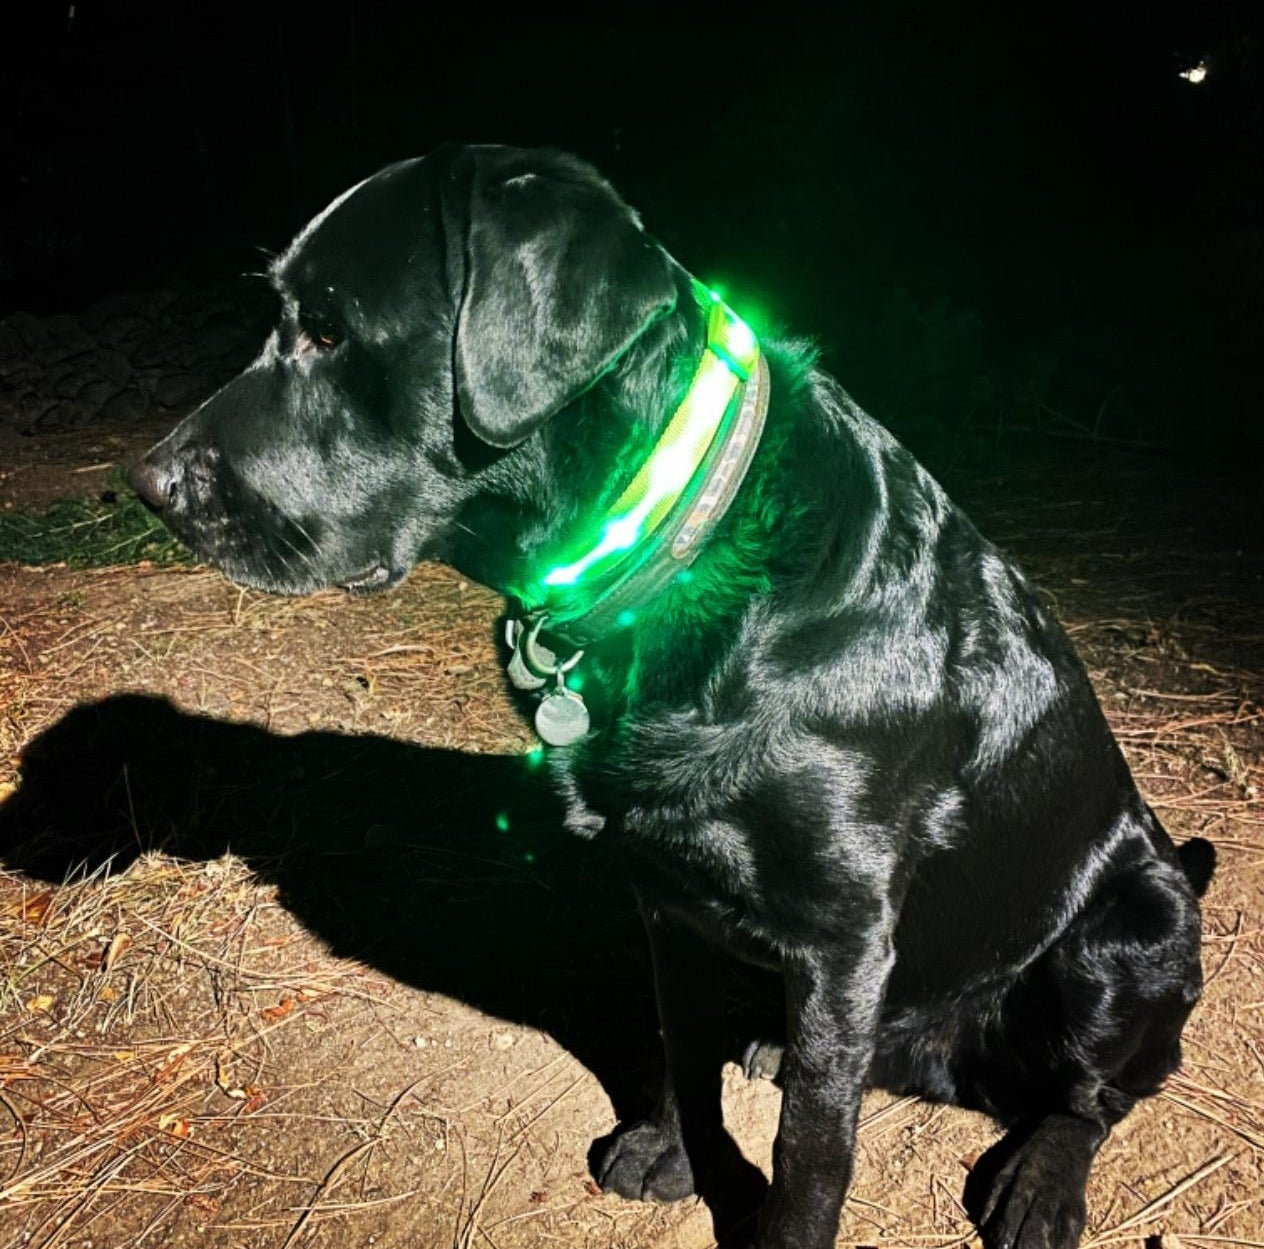 reviewer photo of their black lab wearing the green LED collar